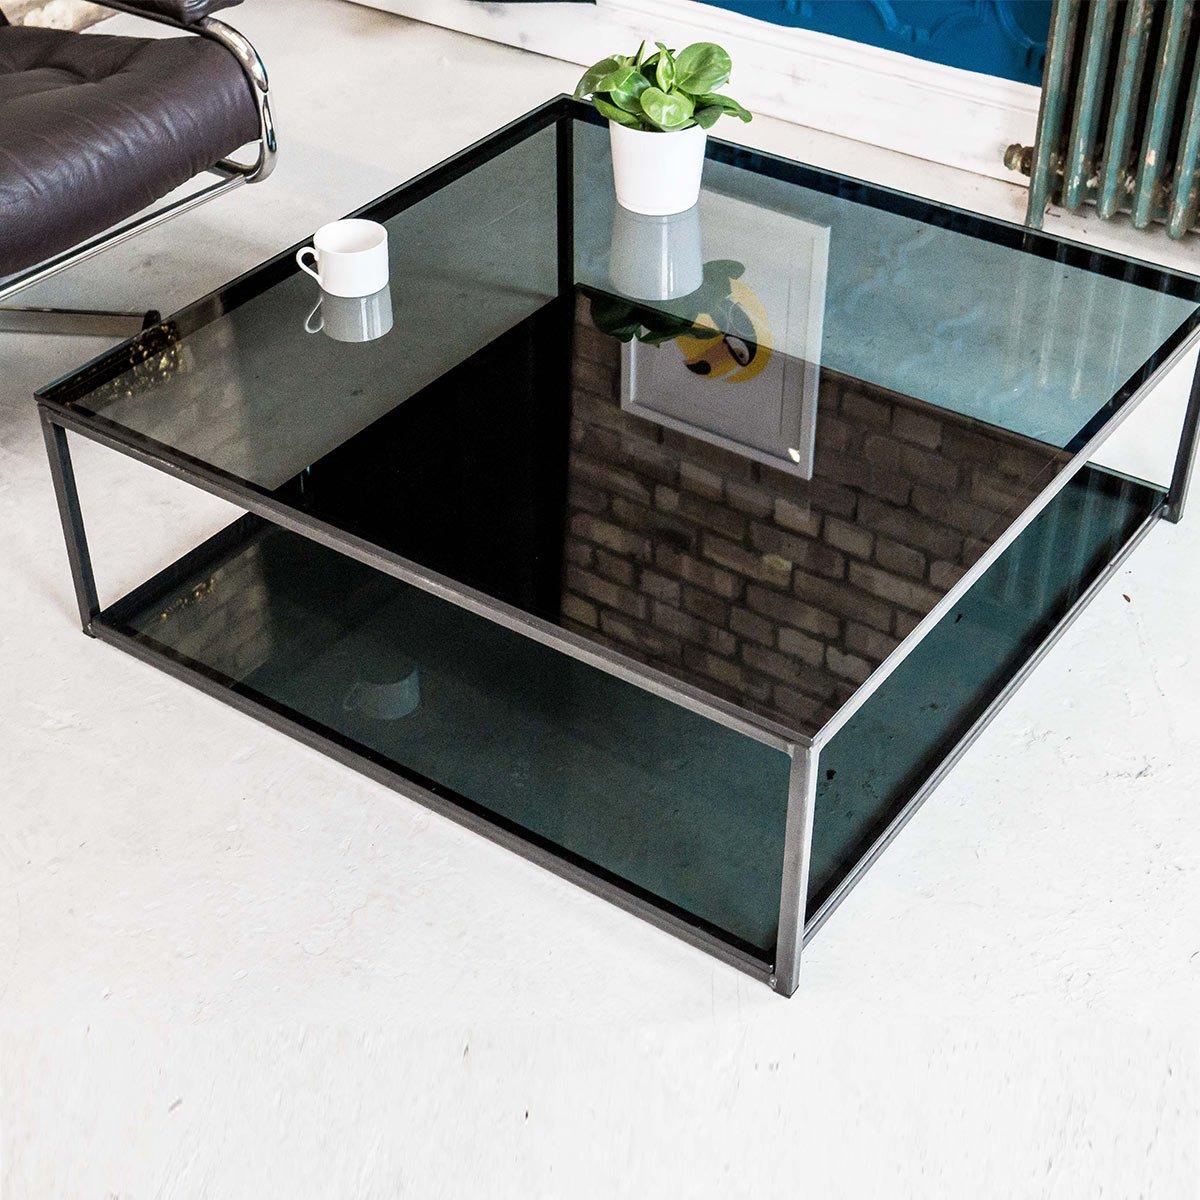 Cubic Industrial Glass Coffee Table With Shelf Klarity Glass Furniture